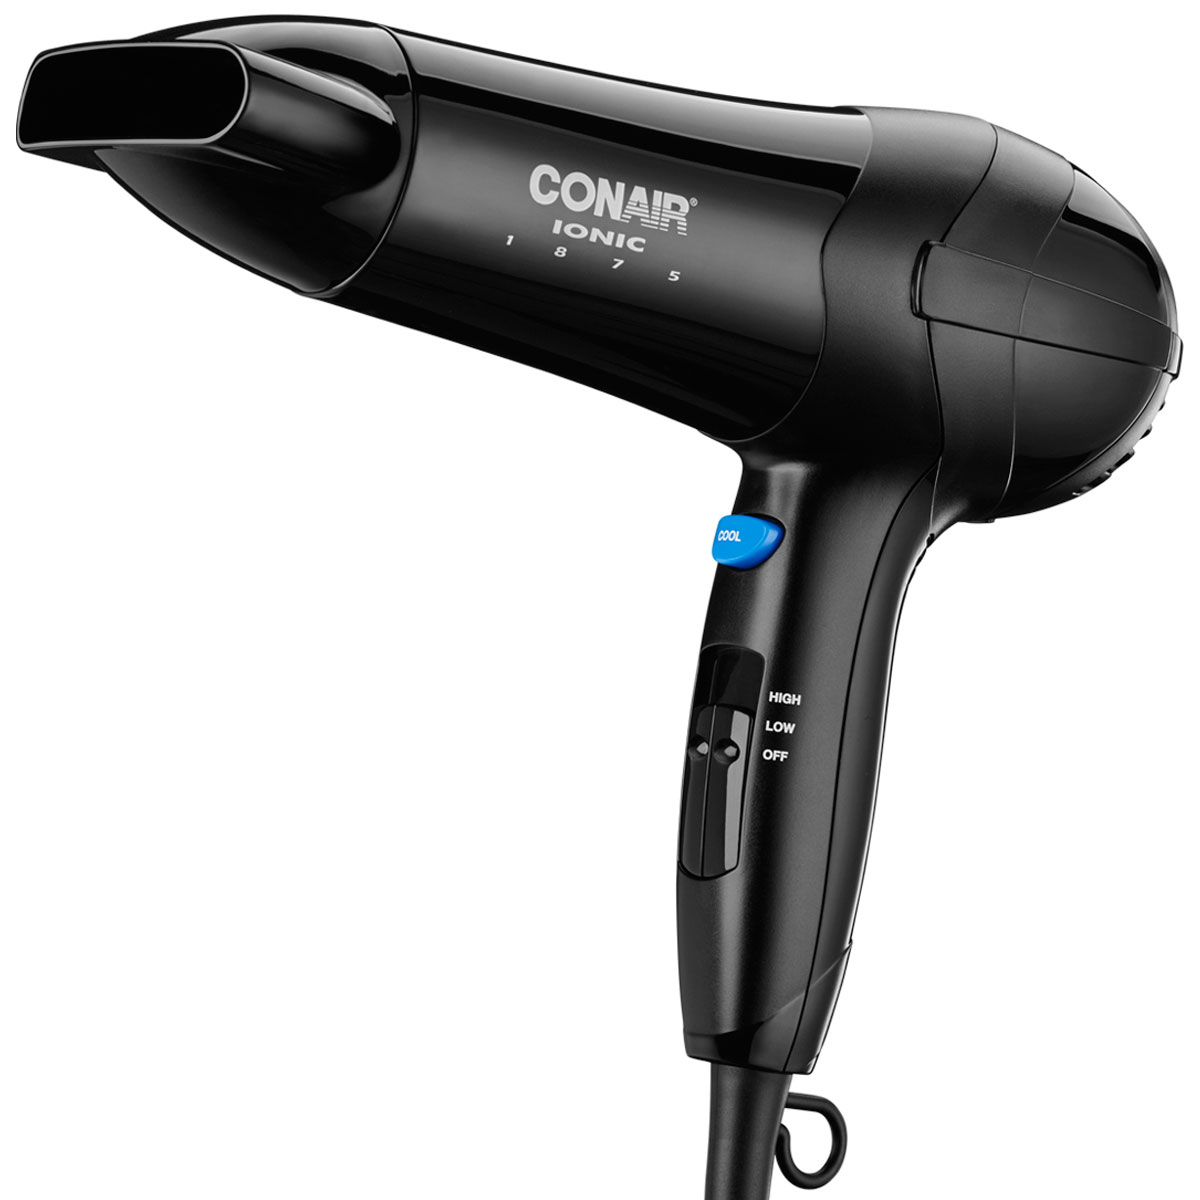 conair blow dryer conair 174 425bkwh 1875 watt ionic hair dryer black 4 per 12172